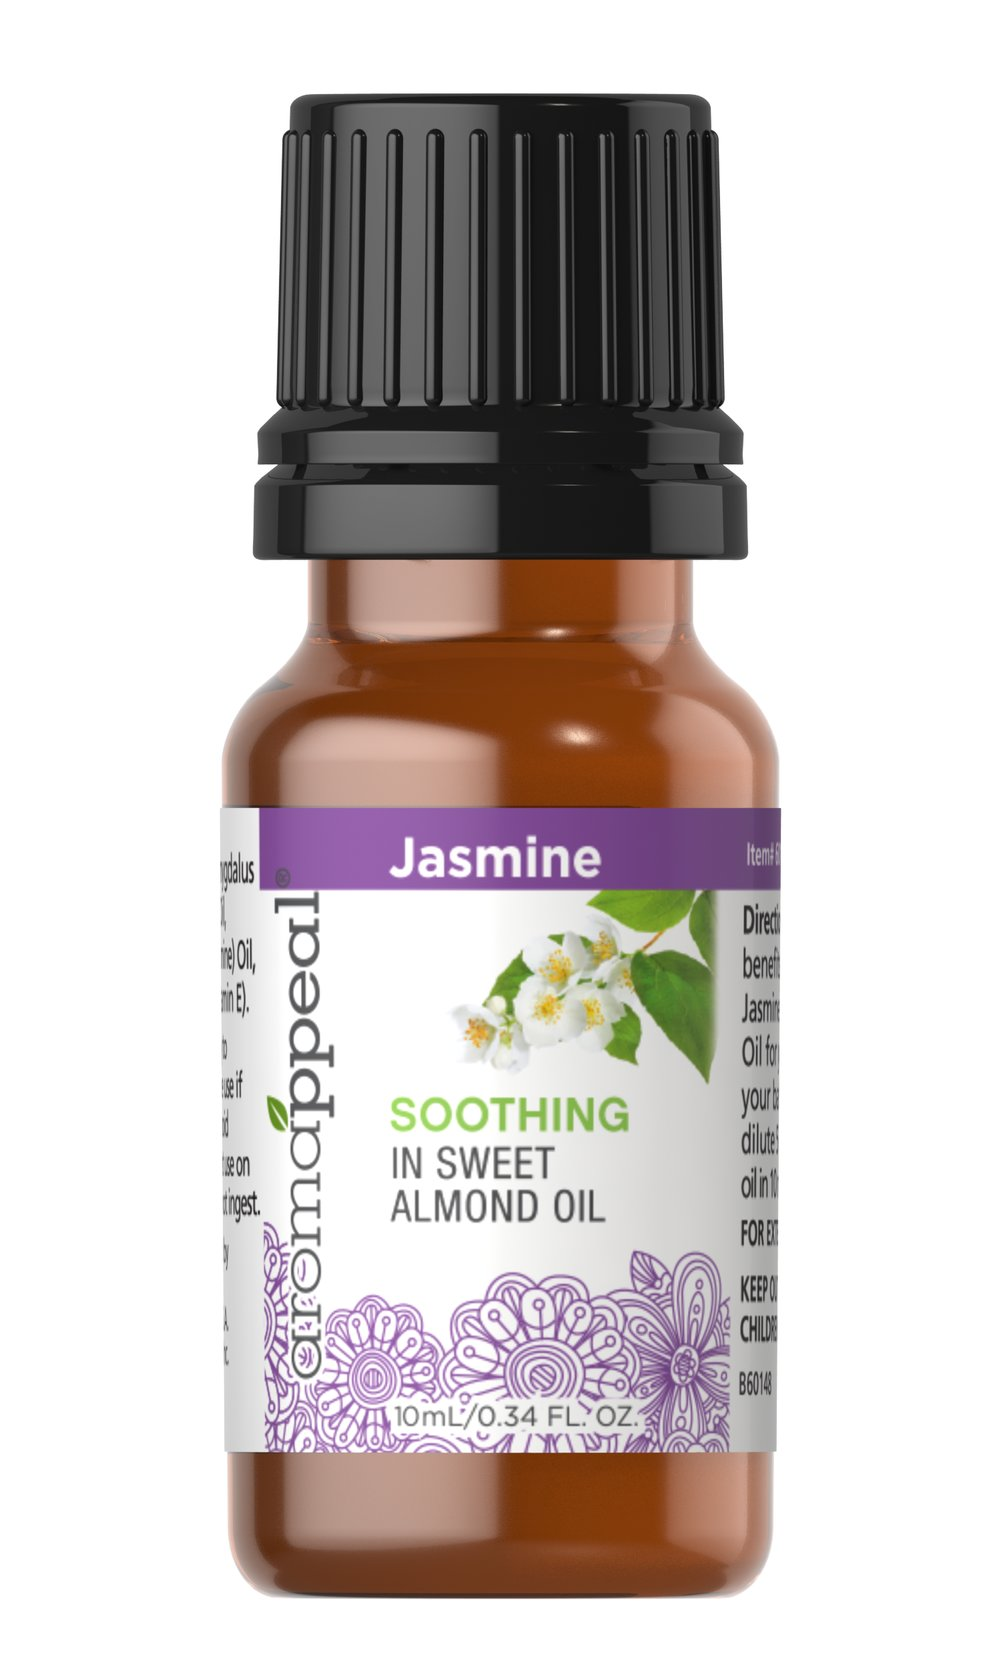 "Jasmine Essential Oil Blend <p>Soothe your spirit and prime yourself for a peacefully serene aromatherapy encounter with Jasmine. As one of the most popular scents in all of aromatherapy, Jasmine Oil is beloved for its deeply rich floral aroma, with a tea-like undertone.</p><ul><li><span class=""bold-pink"">Traditional Uses:</span> Soothing, tranquility and serenity, meditation.</li><li><span class=""bold-pink"">History:</s"